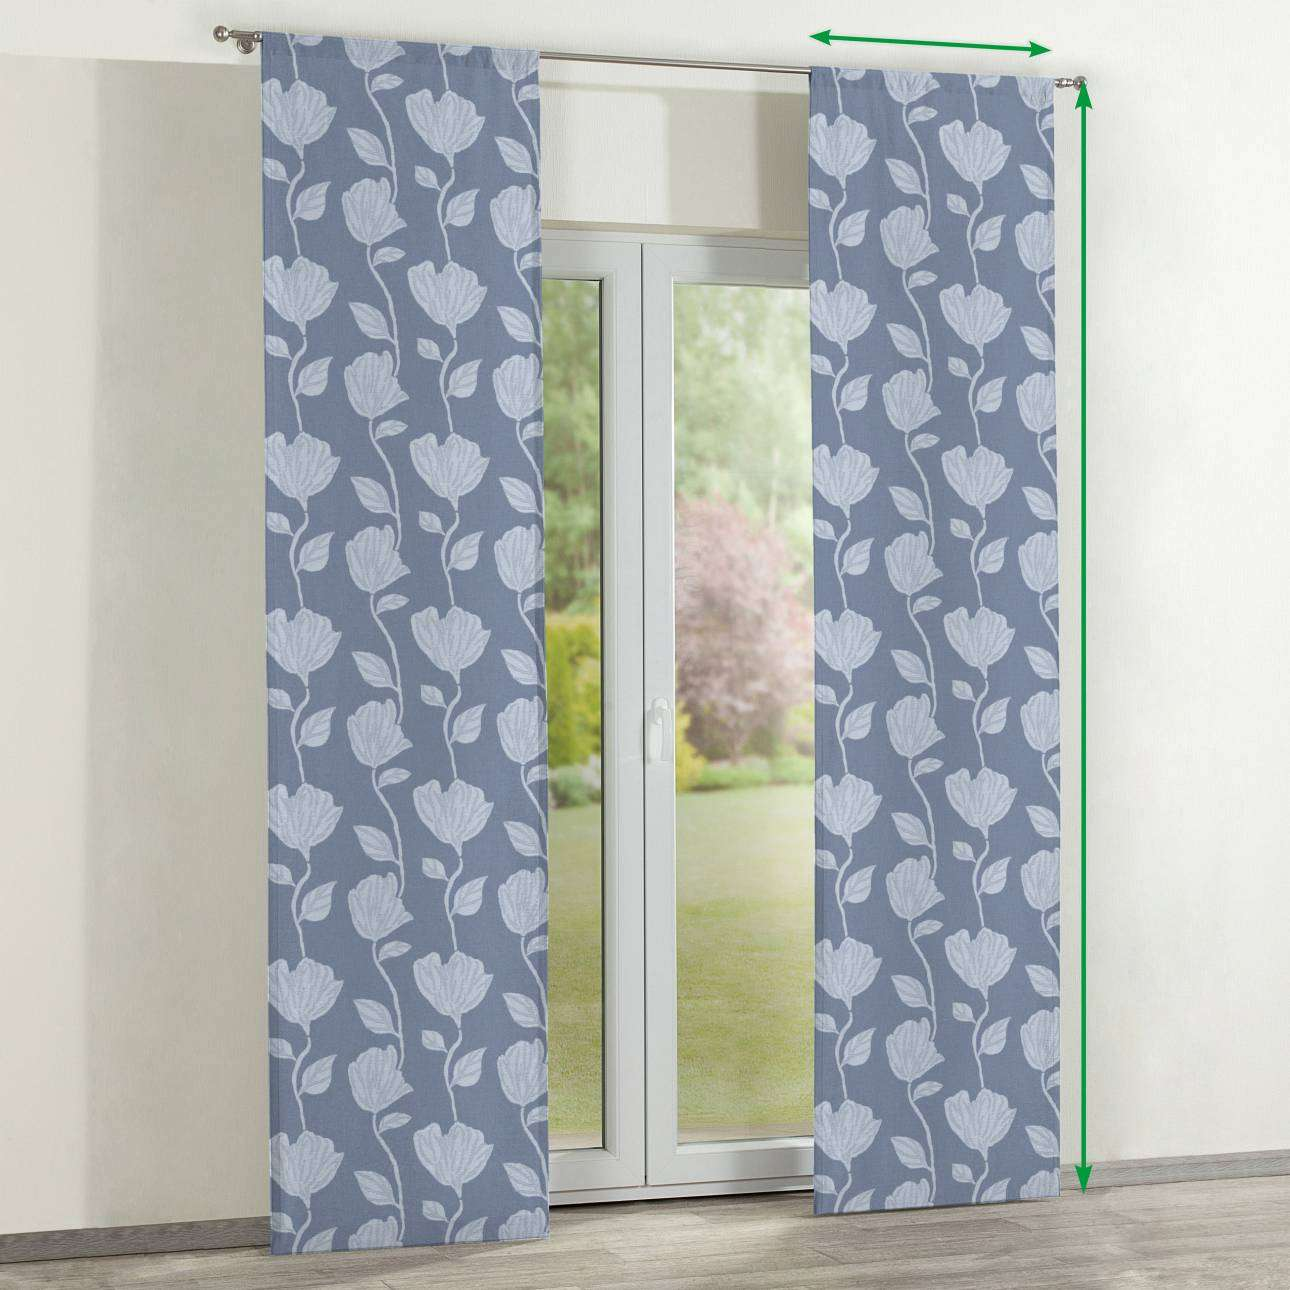 Slot panel curtains – Set of 2 in collection Venice, fabric: 140-61